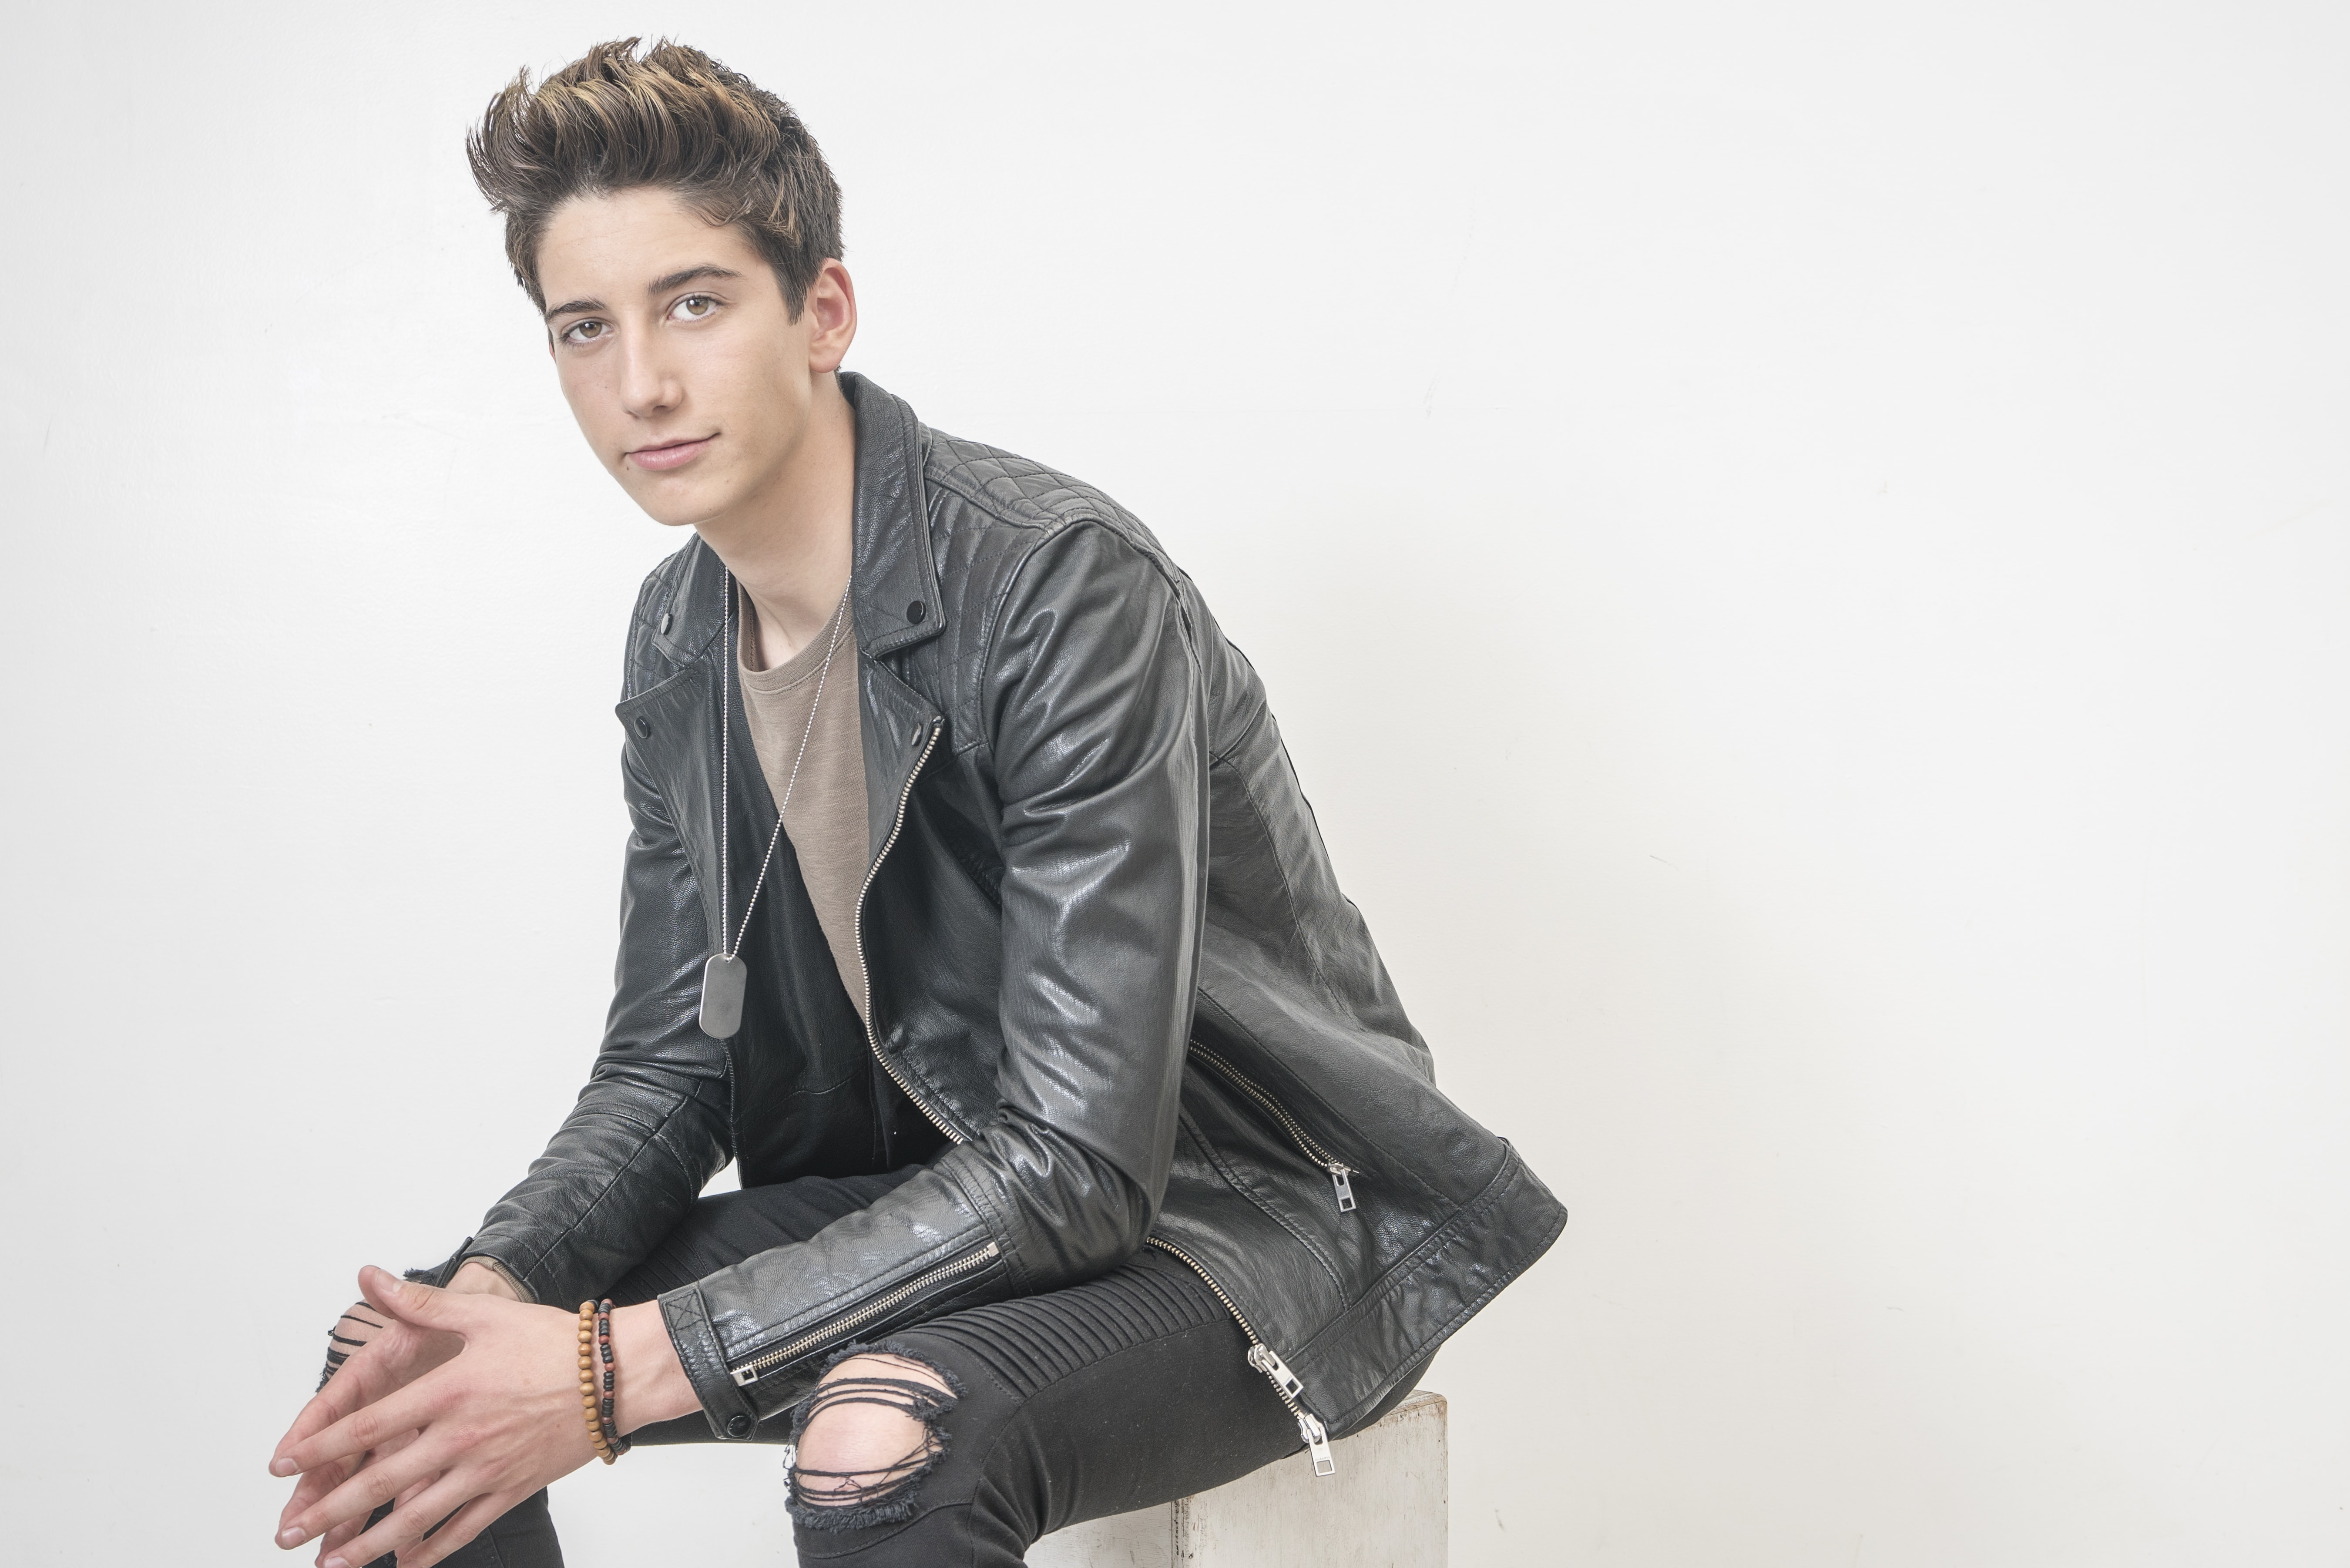 Milo Manheim Photoshoot 2018